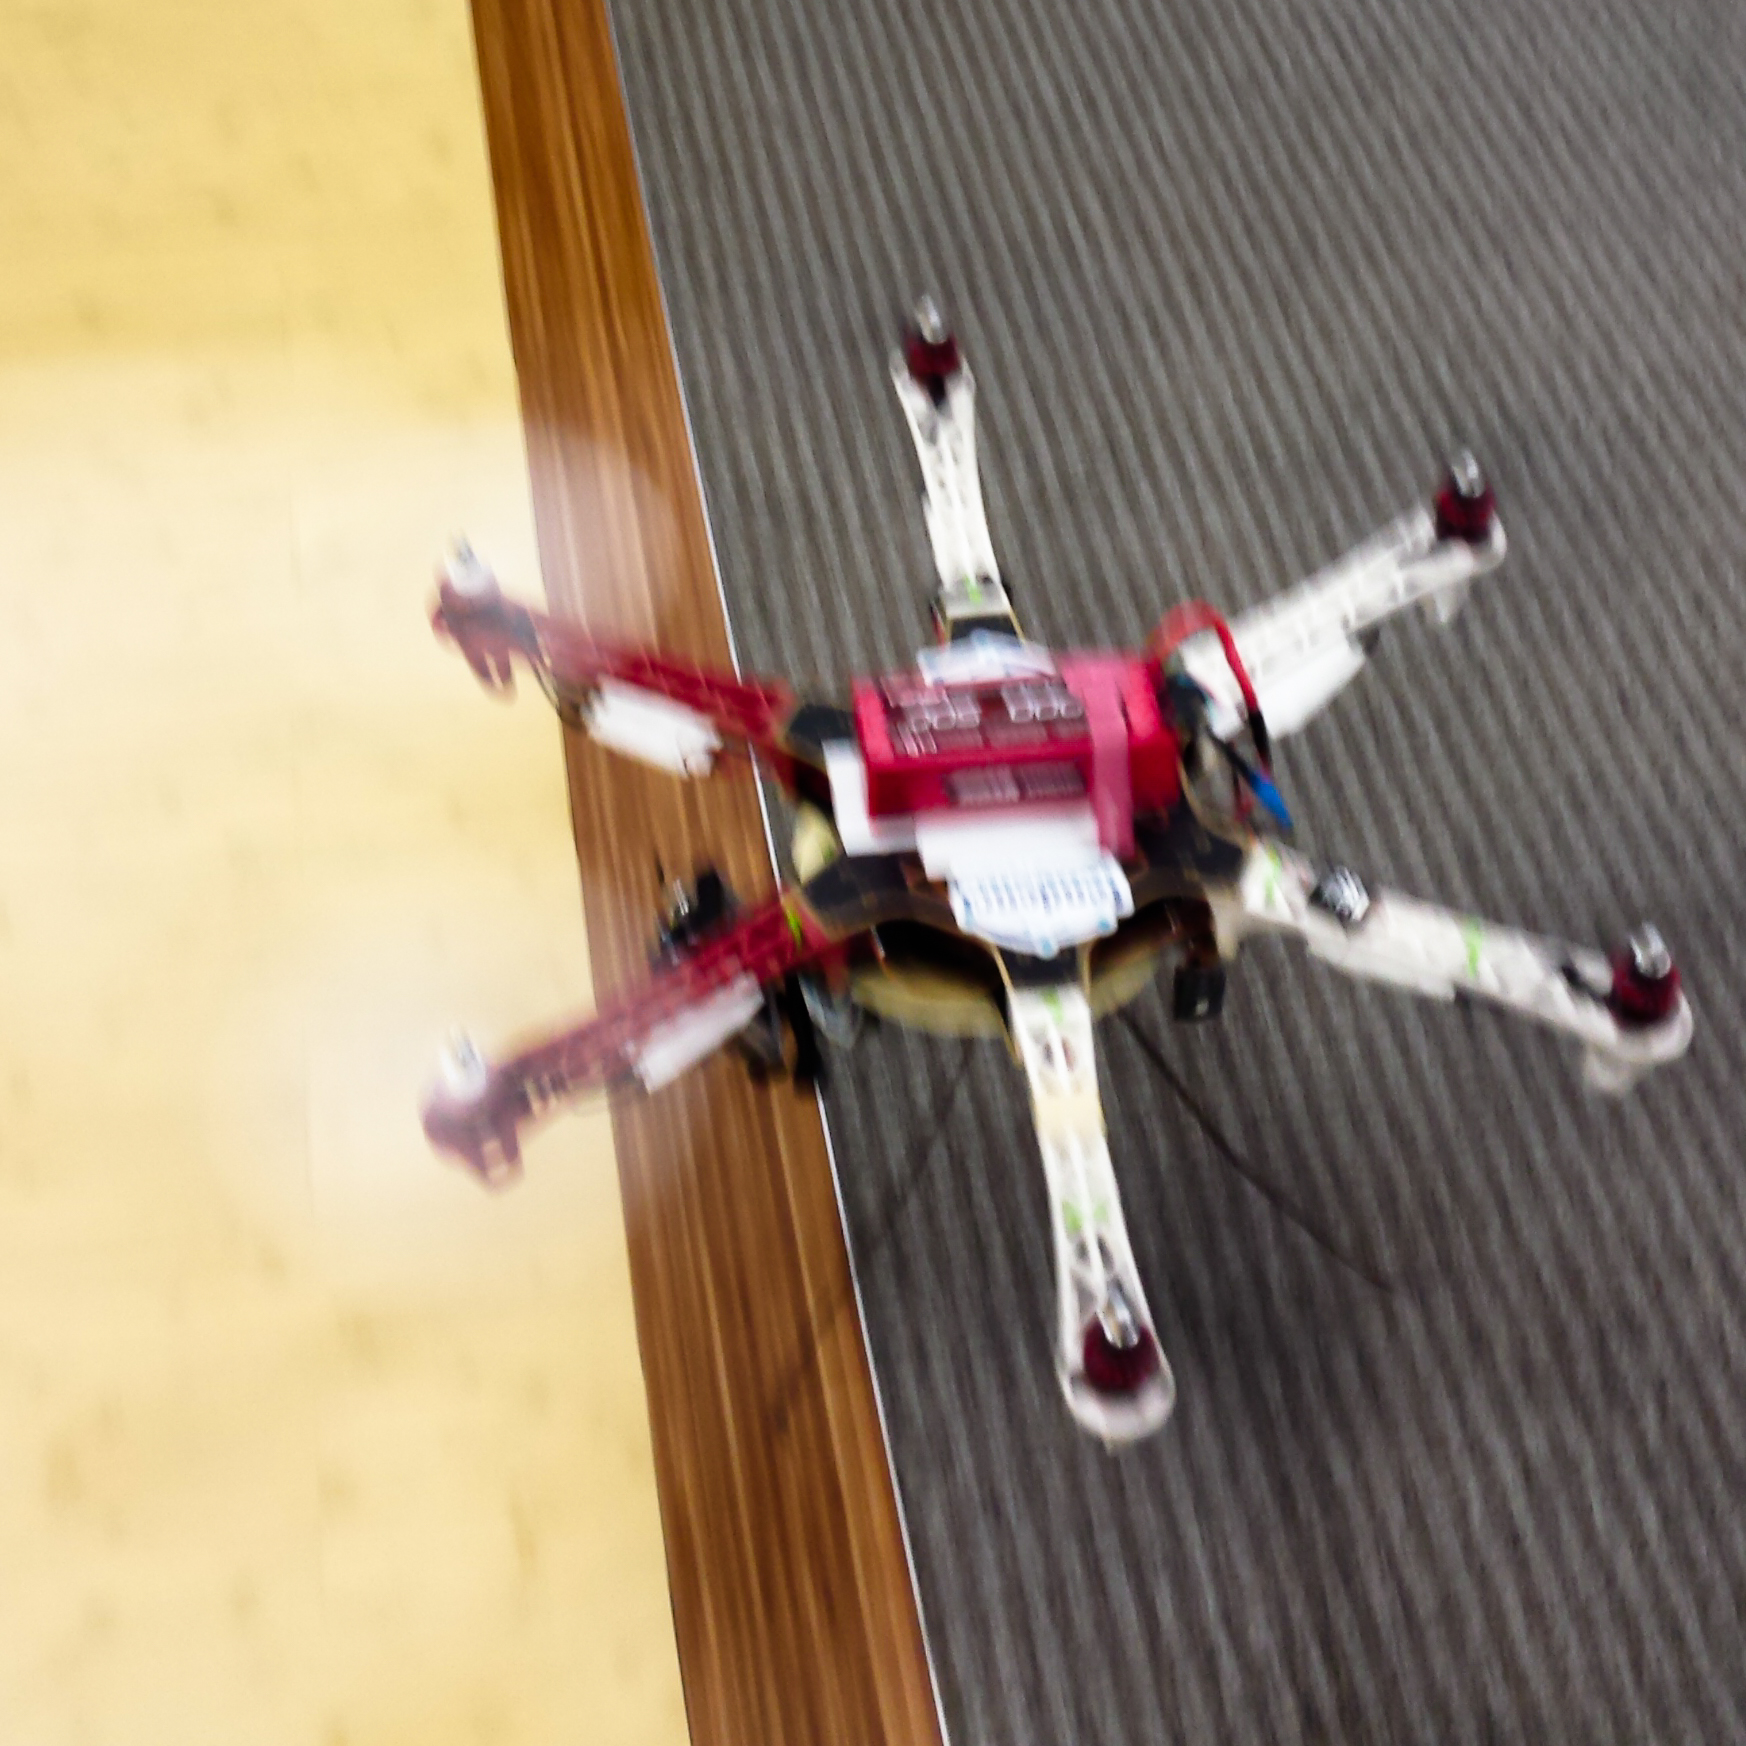 The company hexacopter